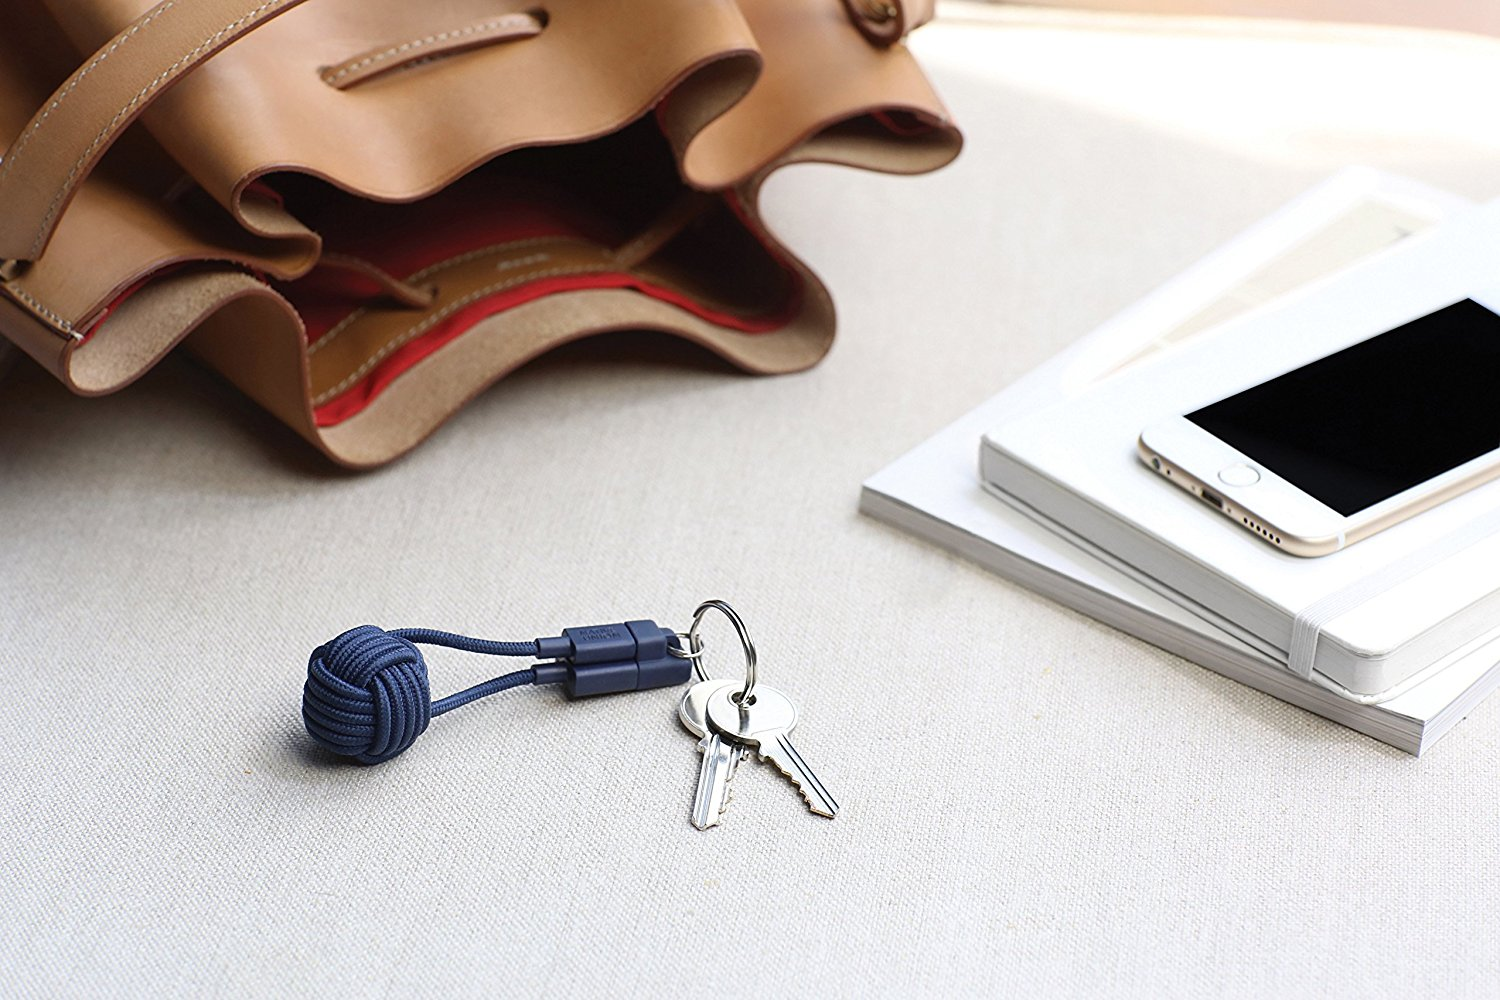 A stylish and functional tech accessory